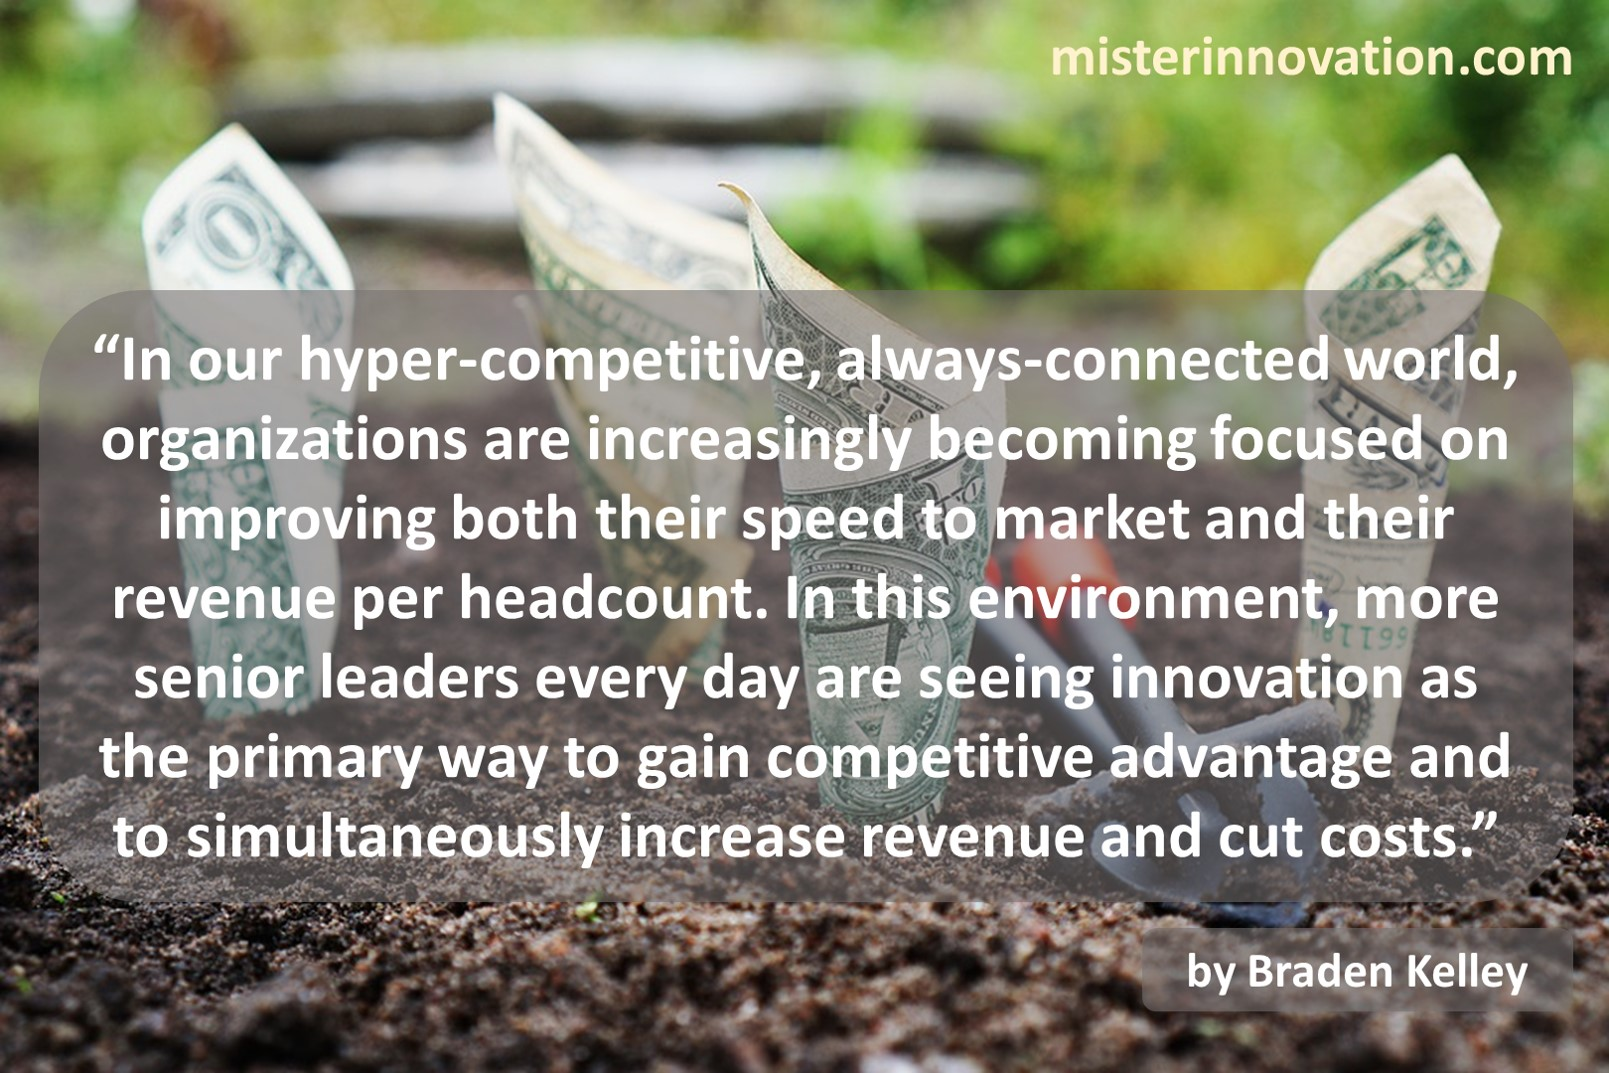 Increase Revenue Cut Costs Innovation Quote from Braden Kelley